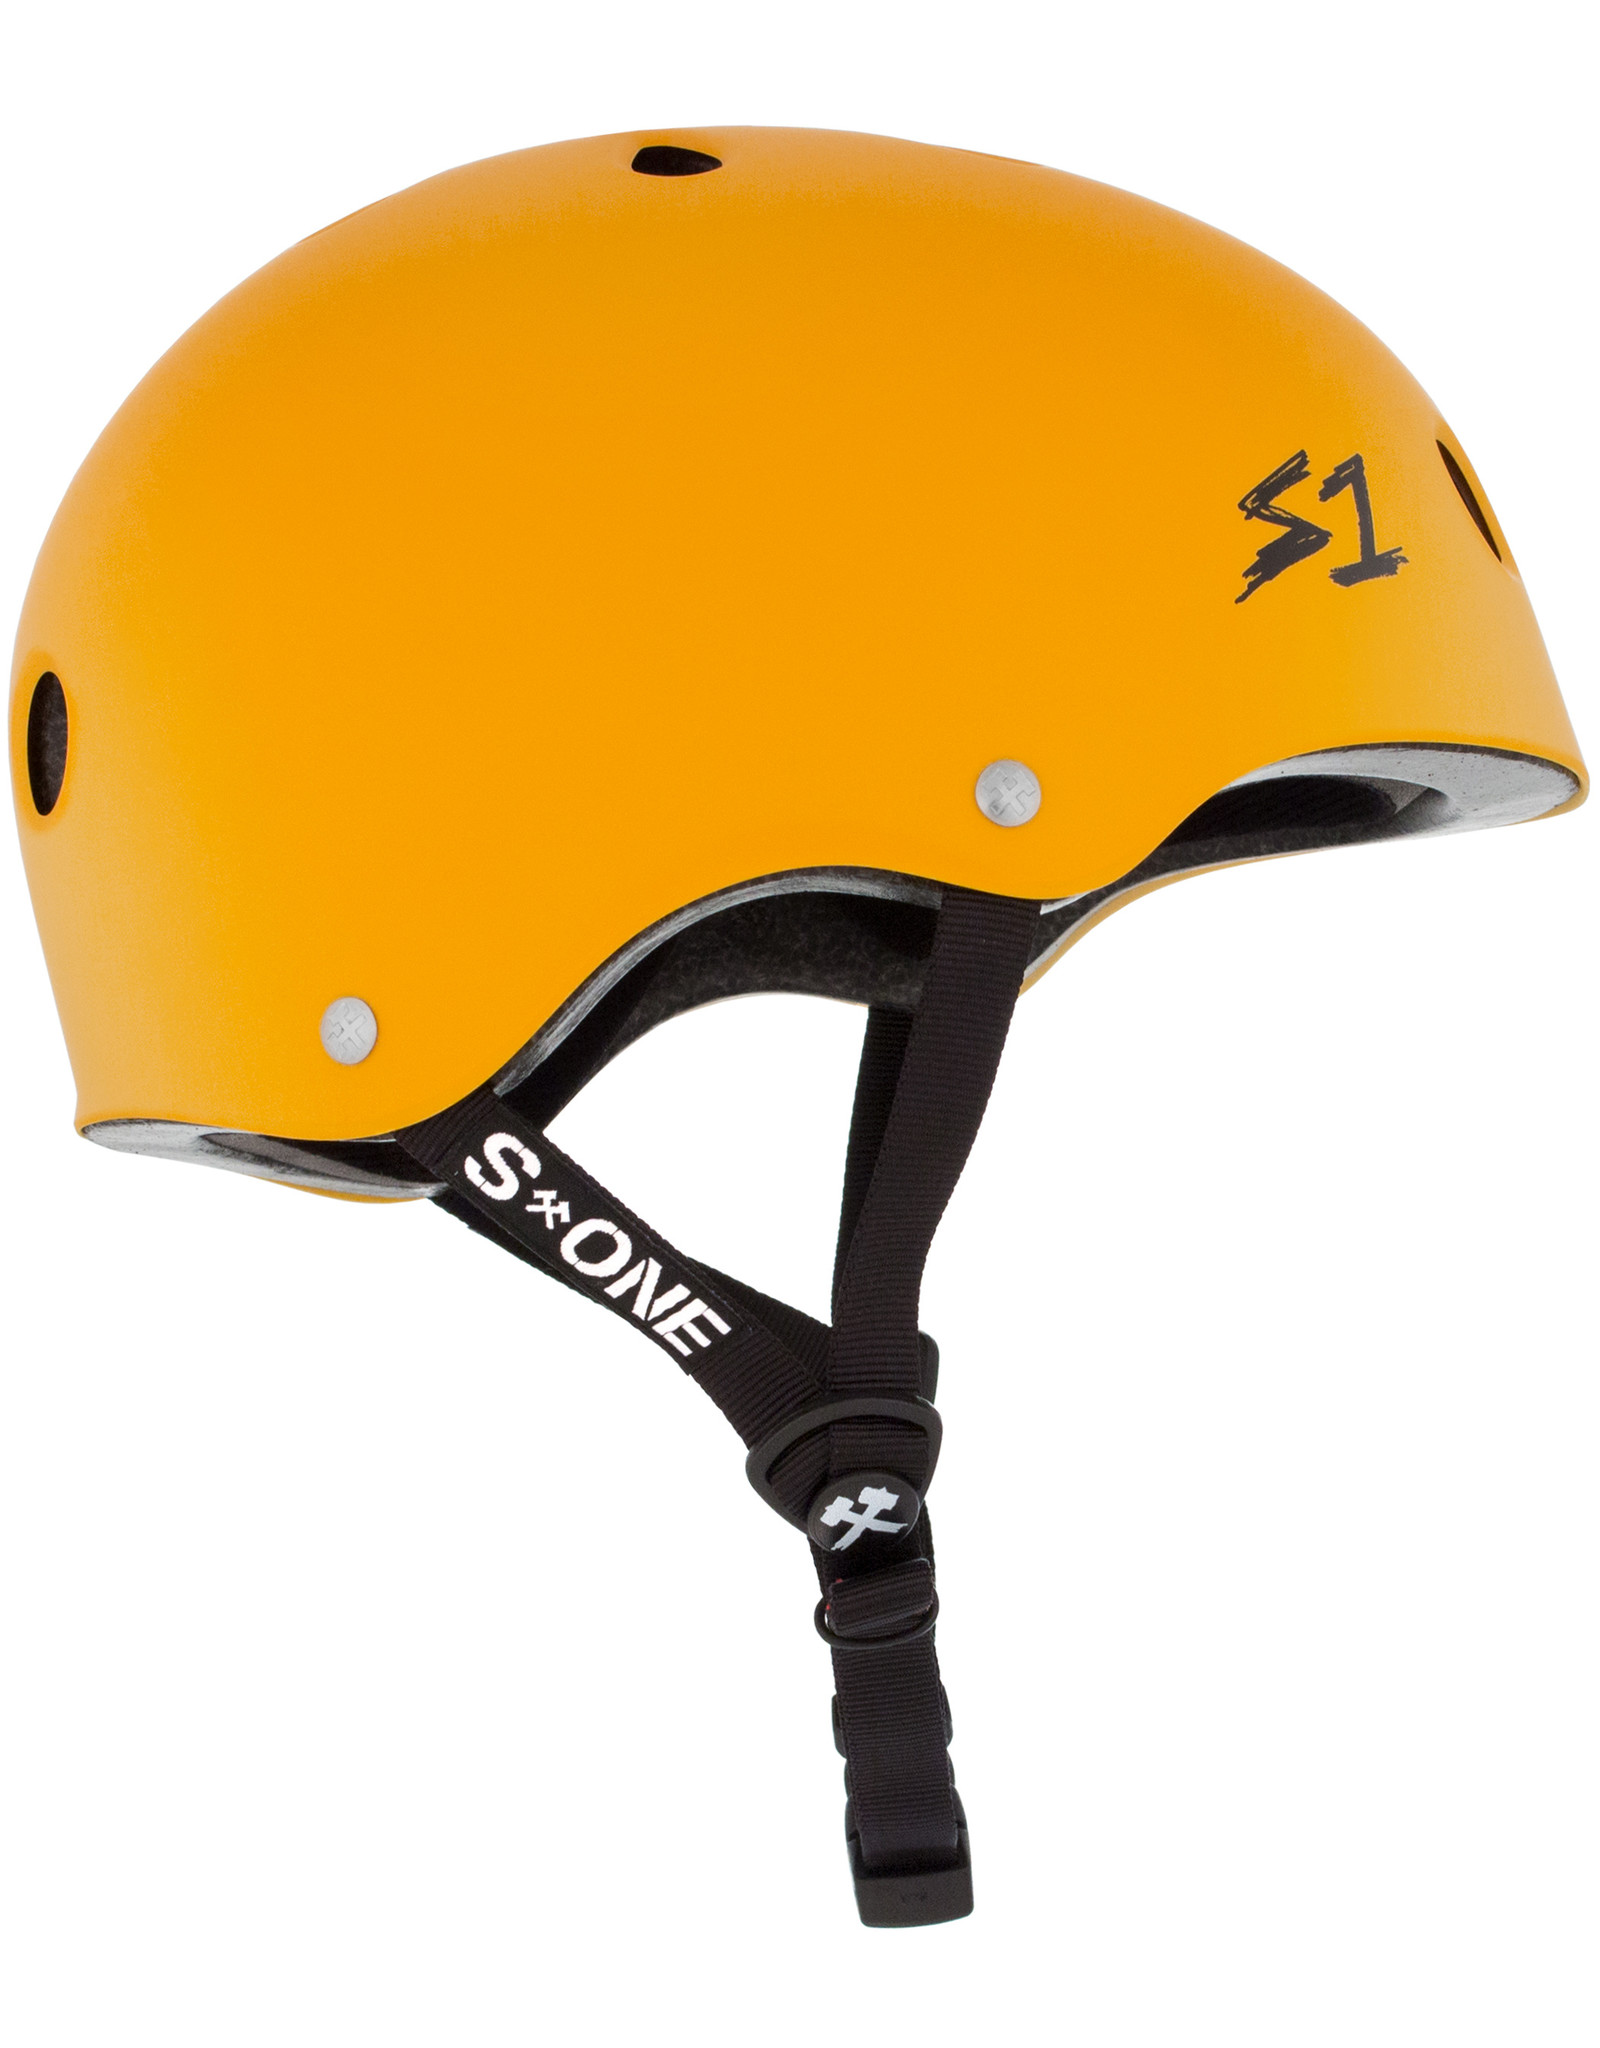 S-One S1 Lifer Helmet